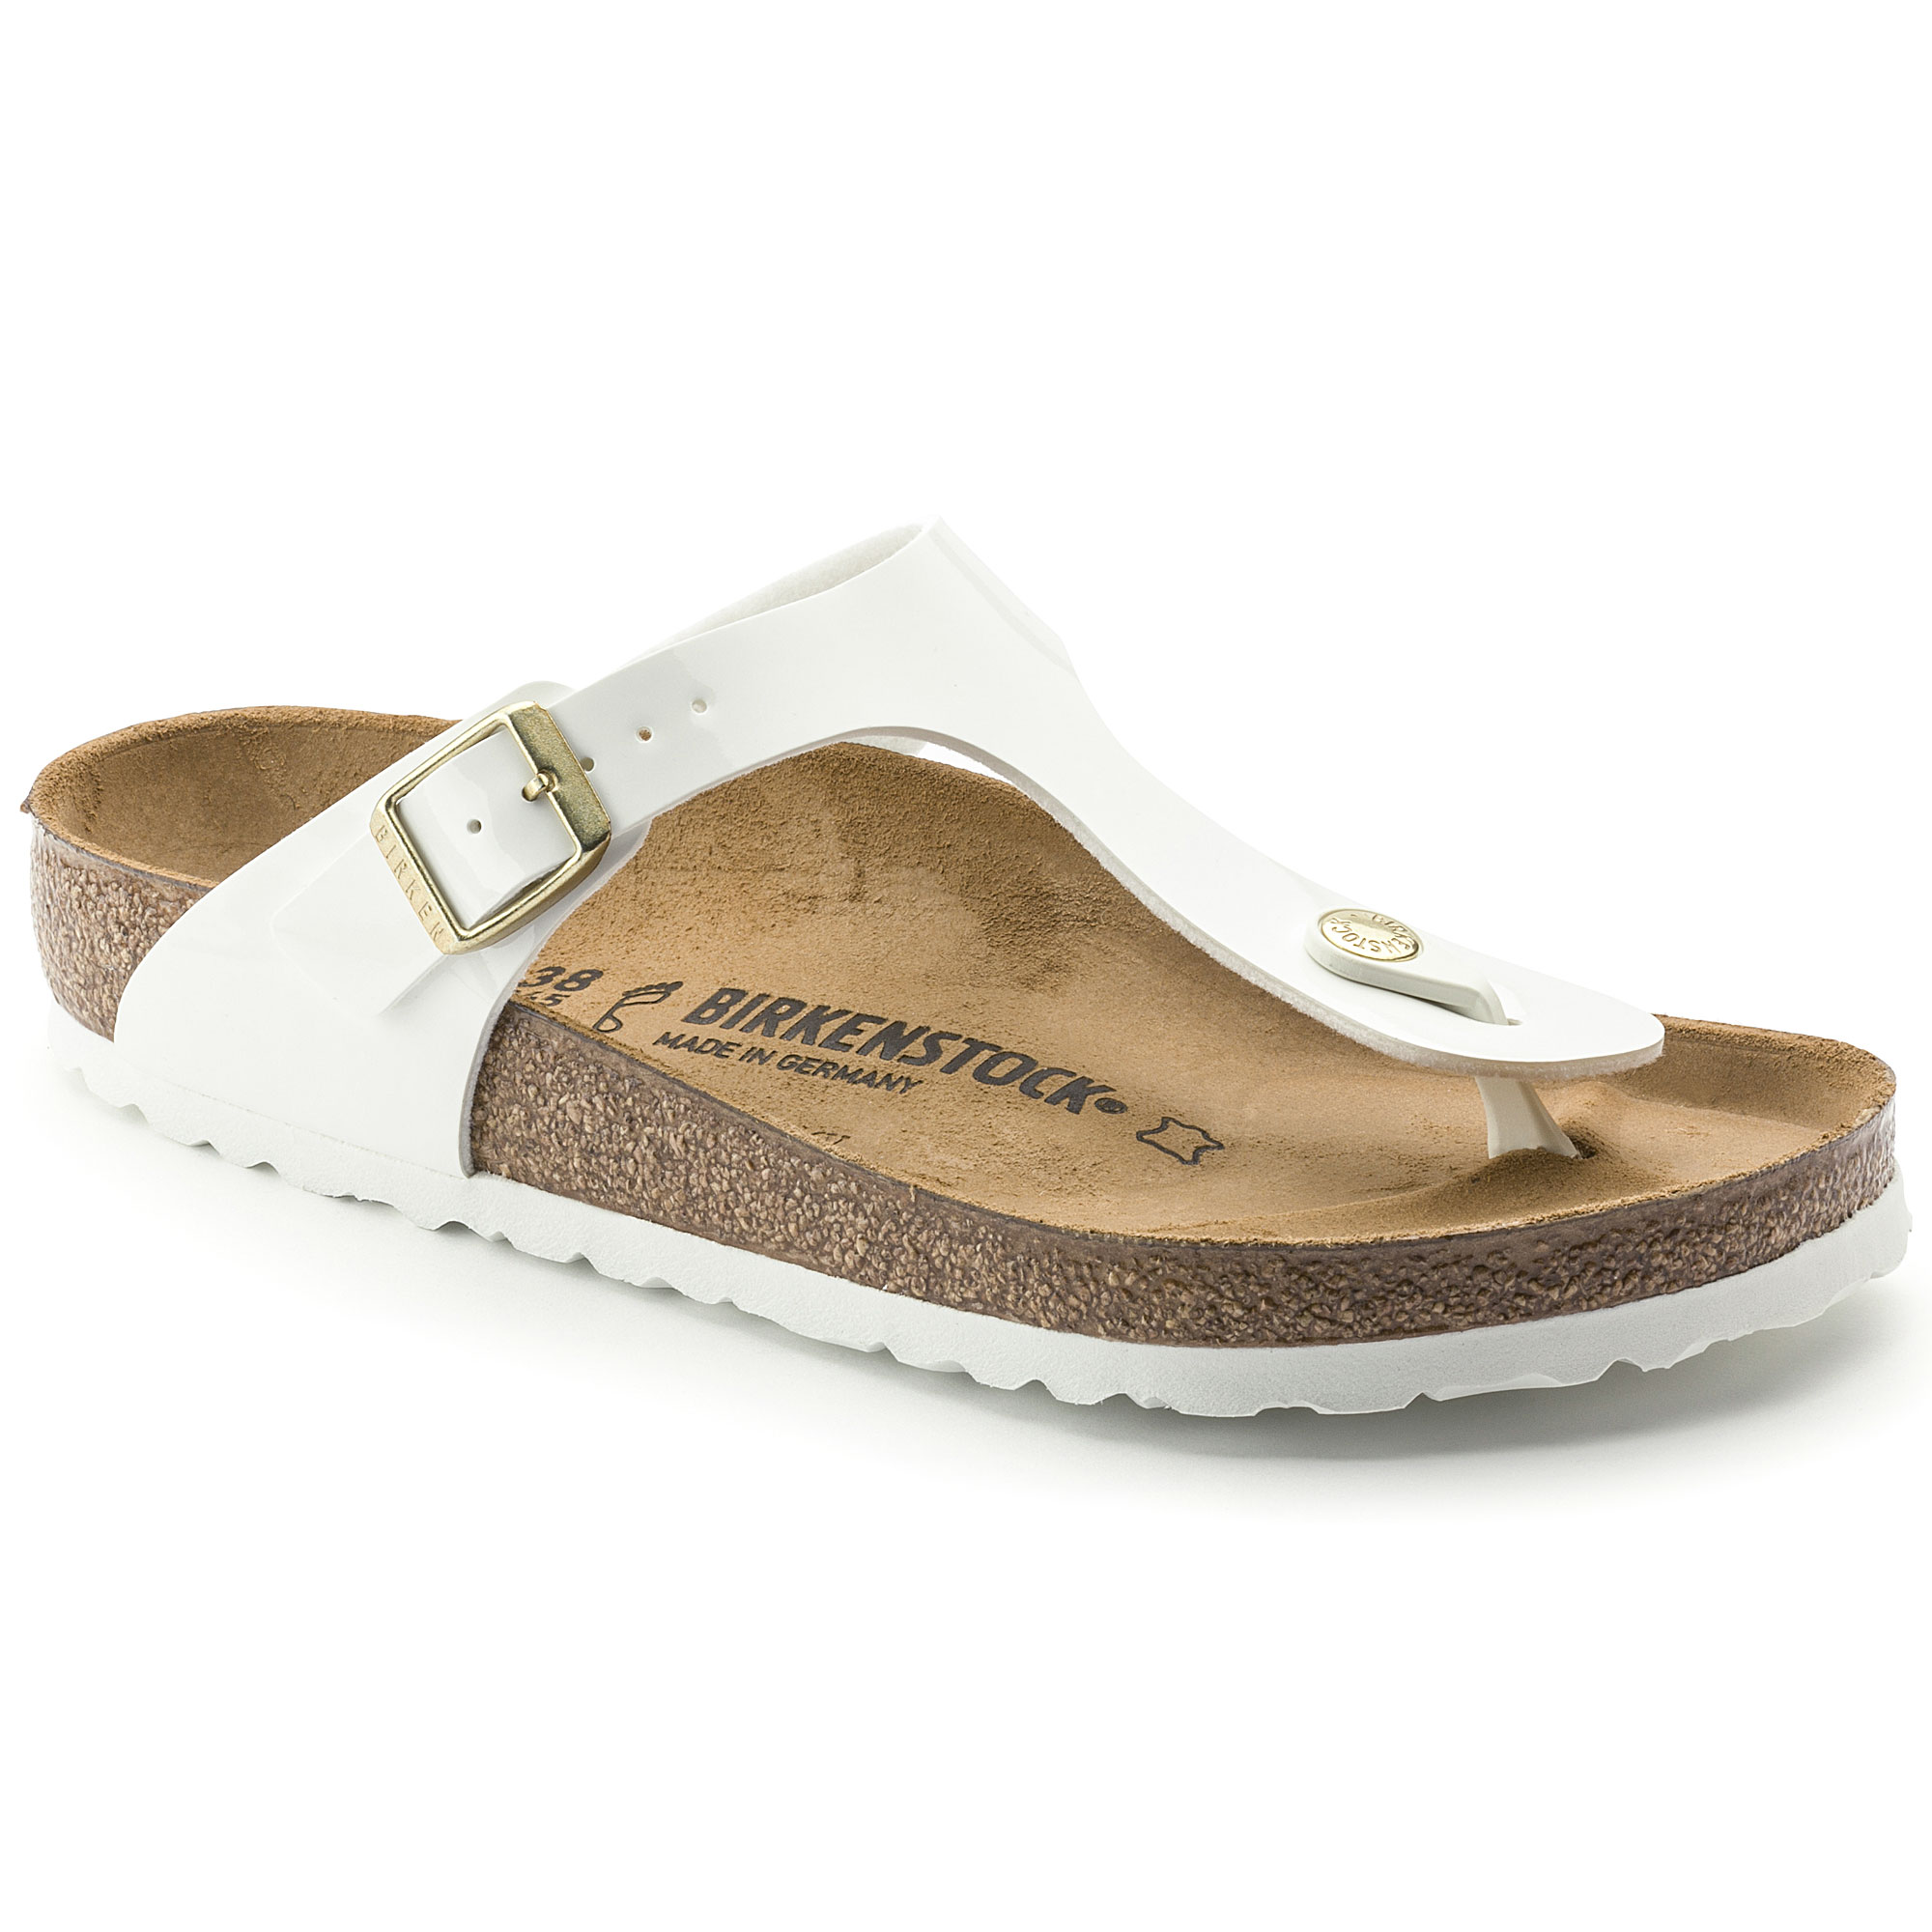 Amazing Deal on BIRKENSTOCK Gizeh Birko Flor Patent White